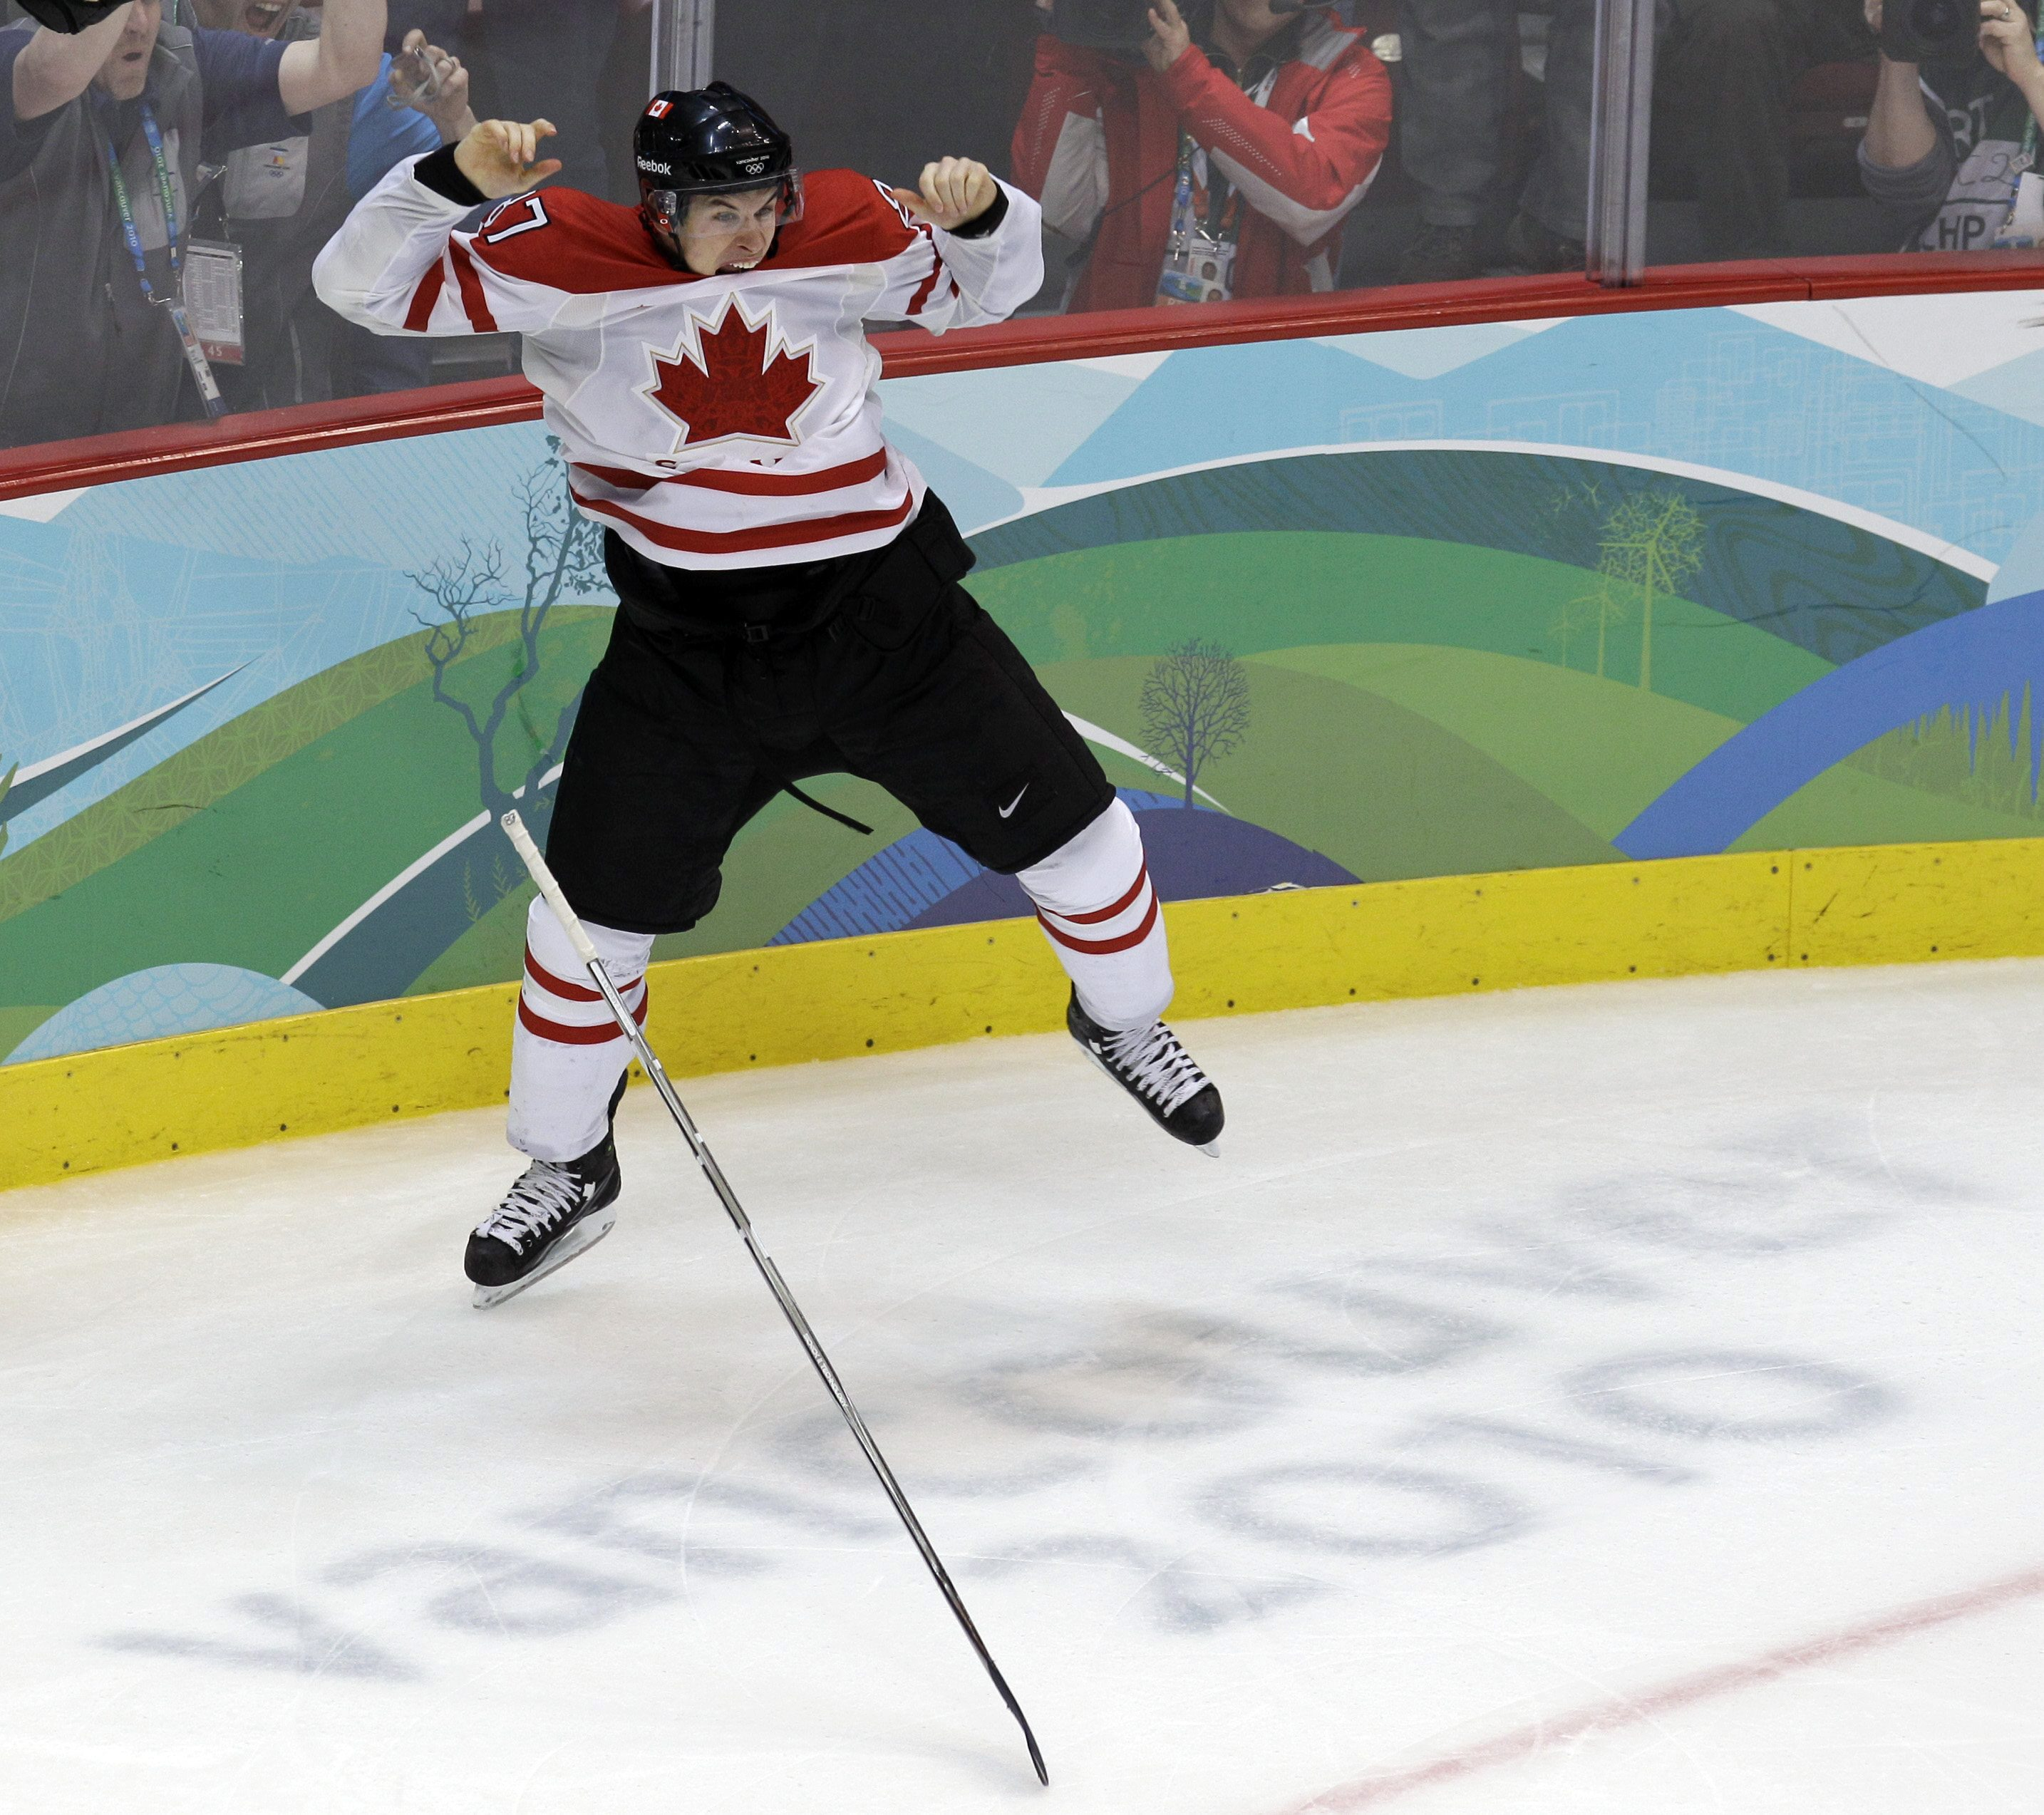 Sidney Crosby's hockey stick falls to the ground as he celebrates his winning goal at the Vancouver 2010 Olympics.